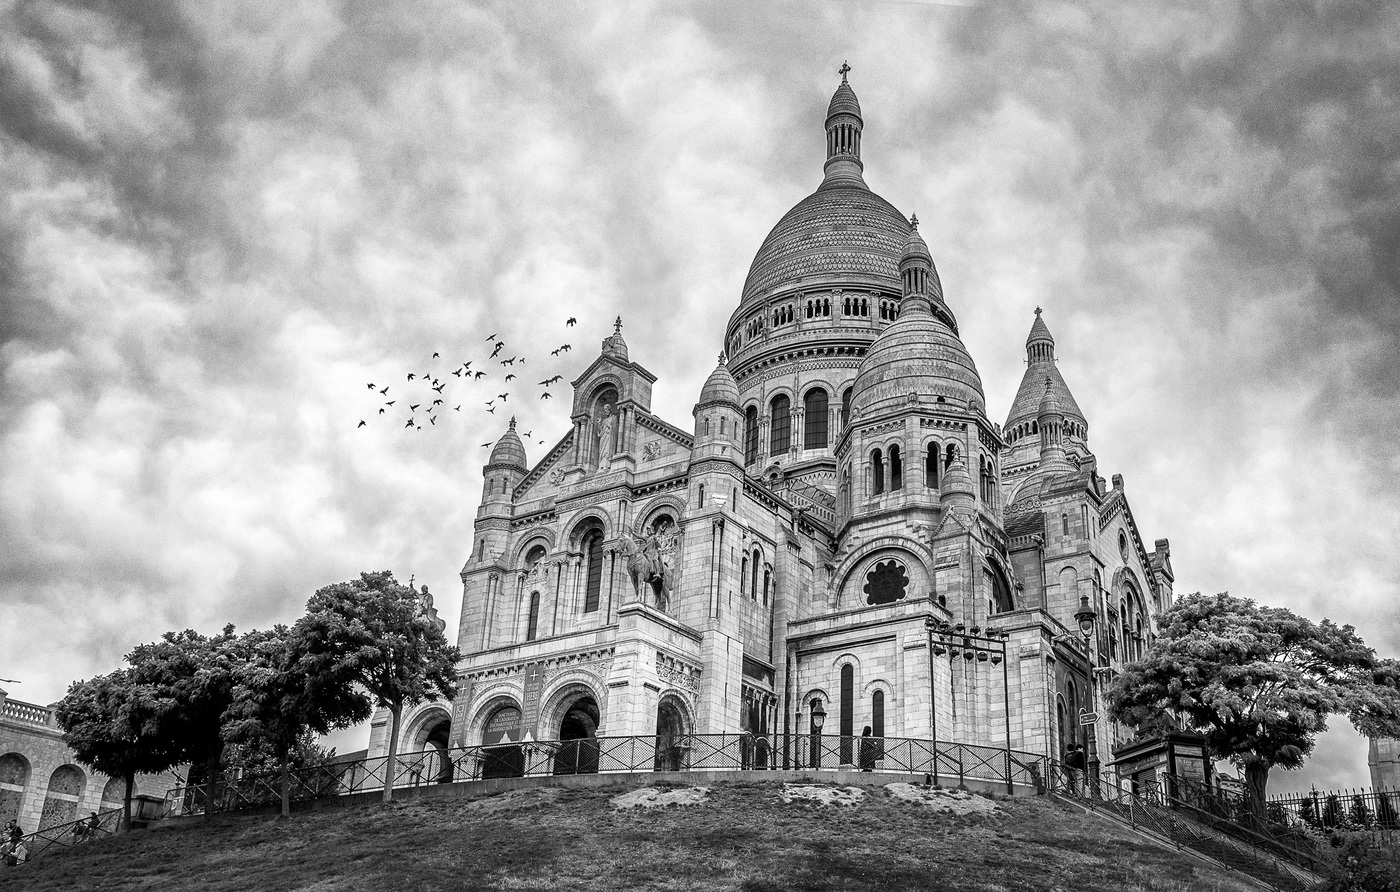 Secret of Sacre Coeur